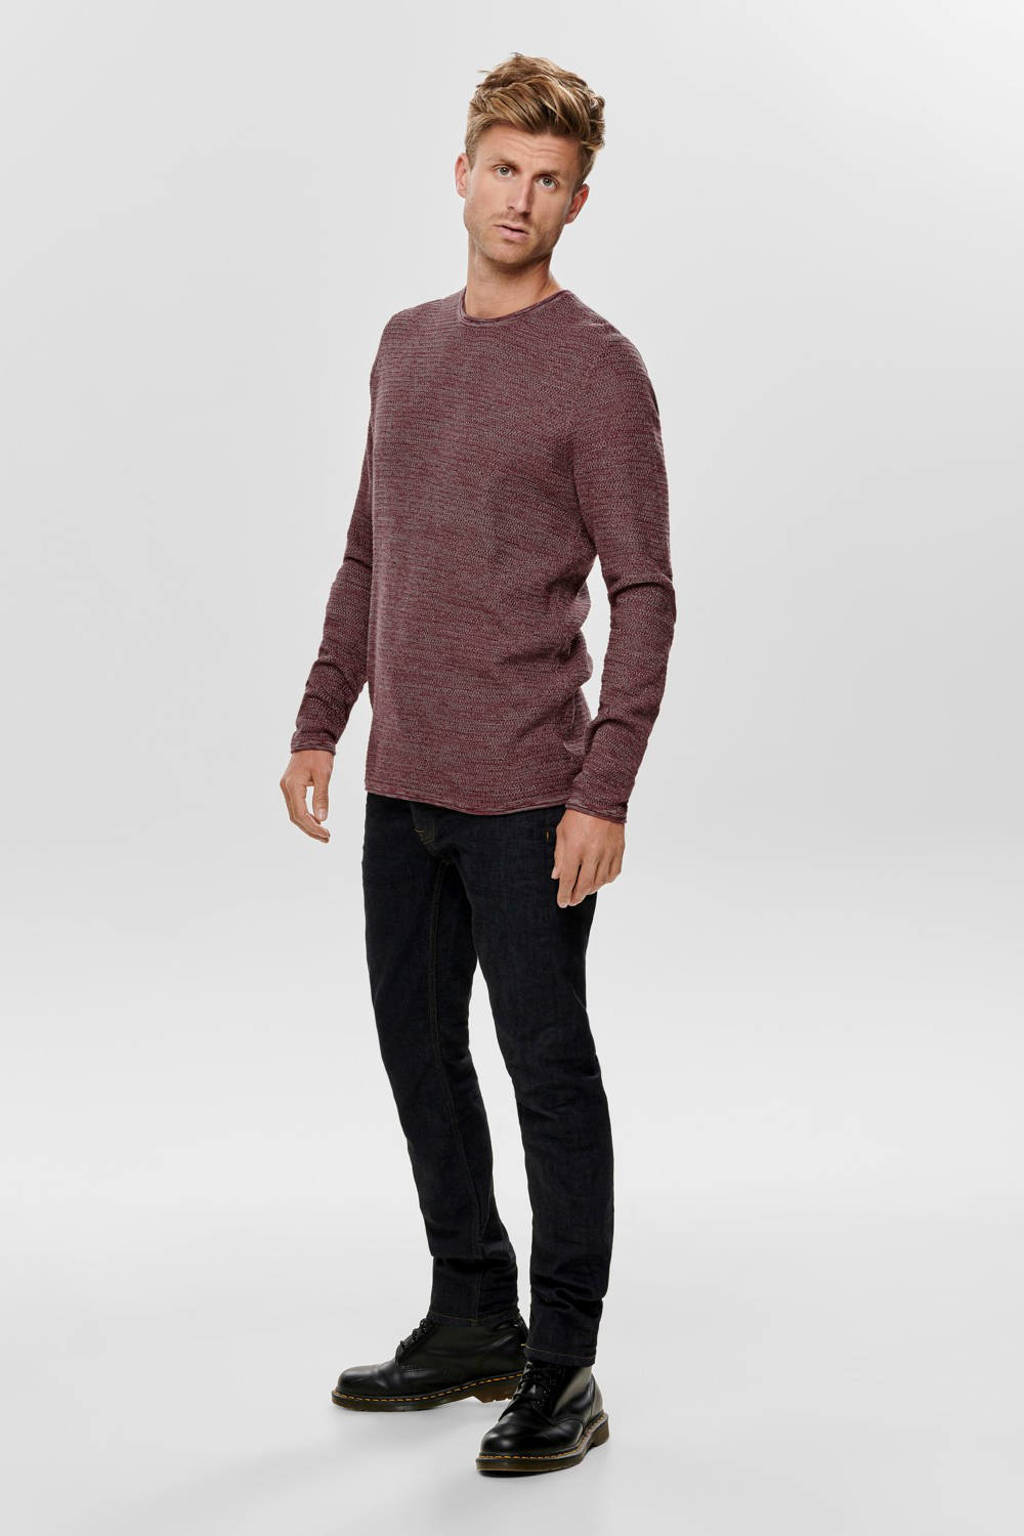 ONLY & SONS trui, Rood